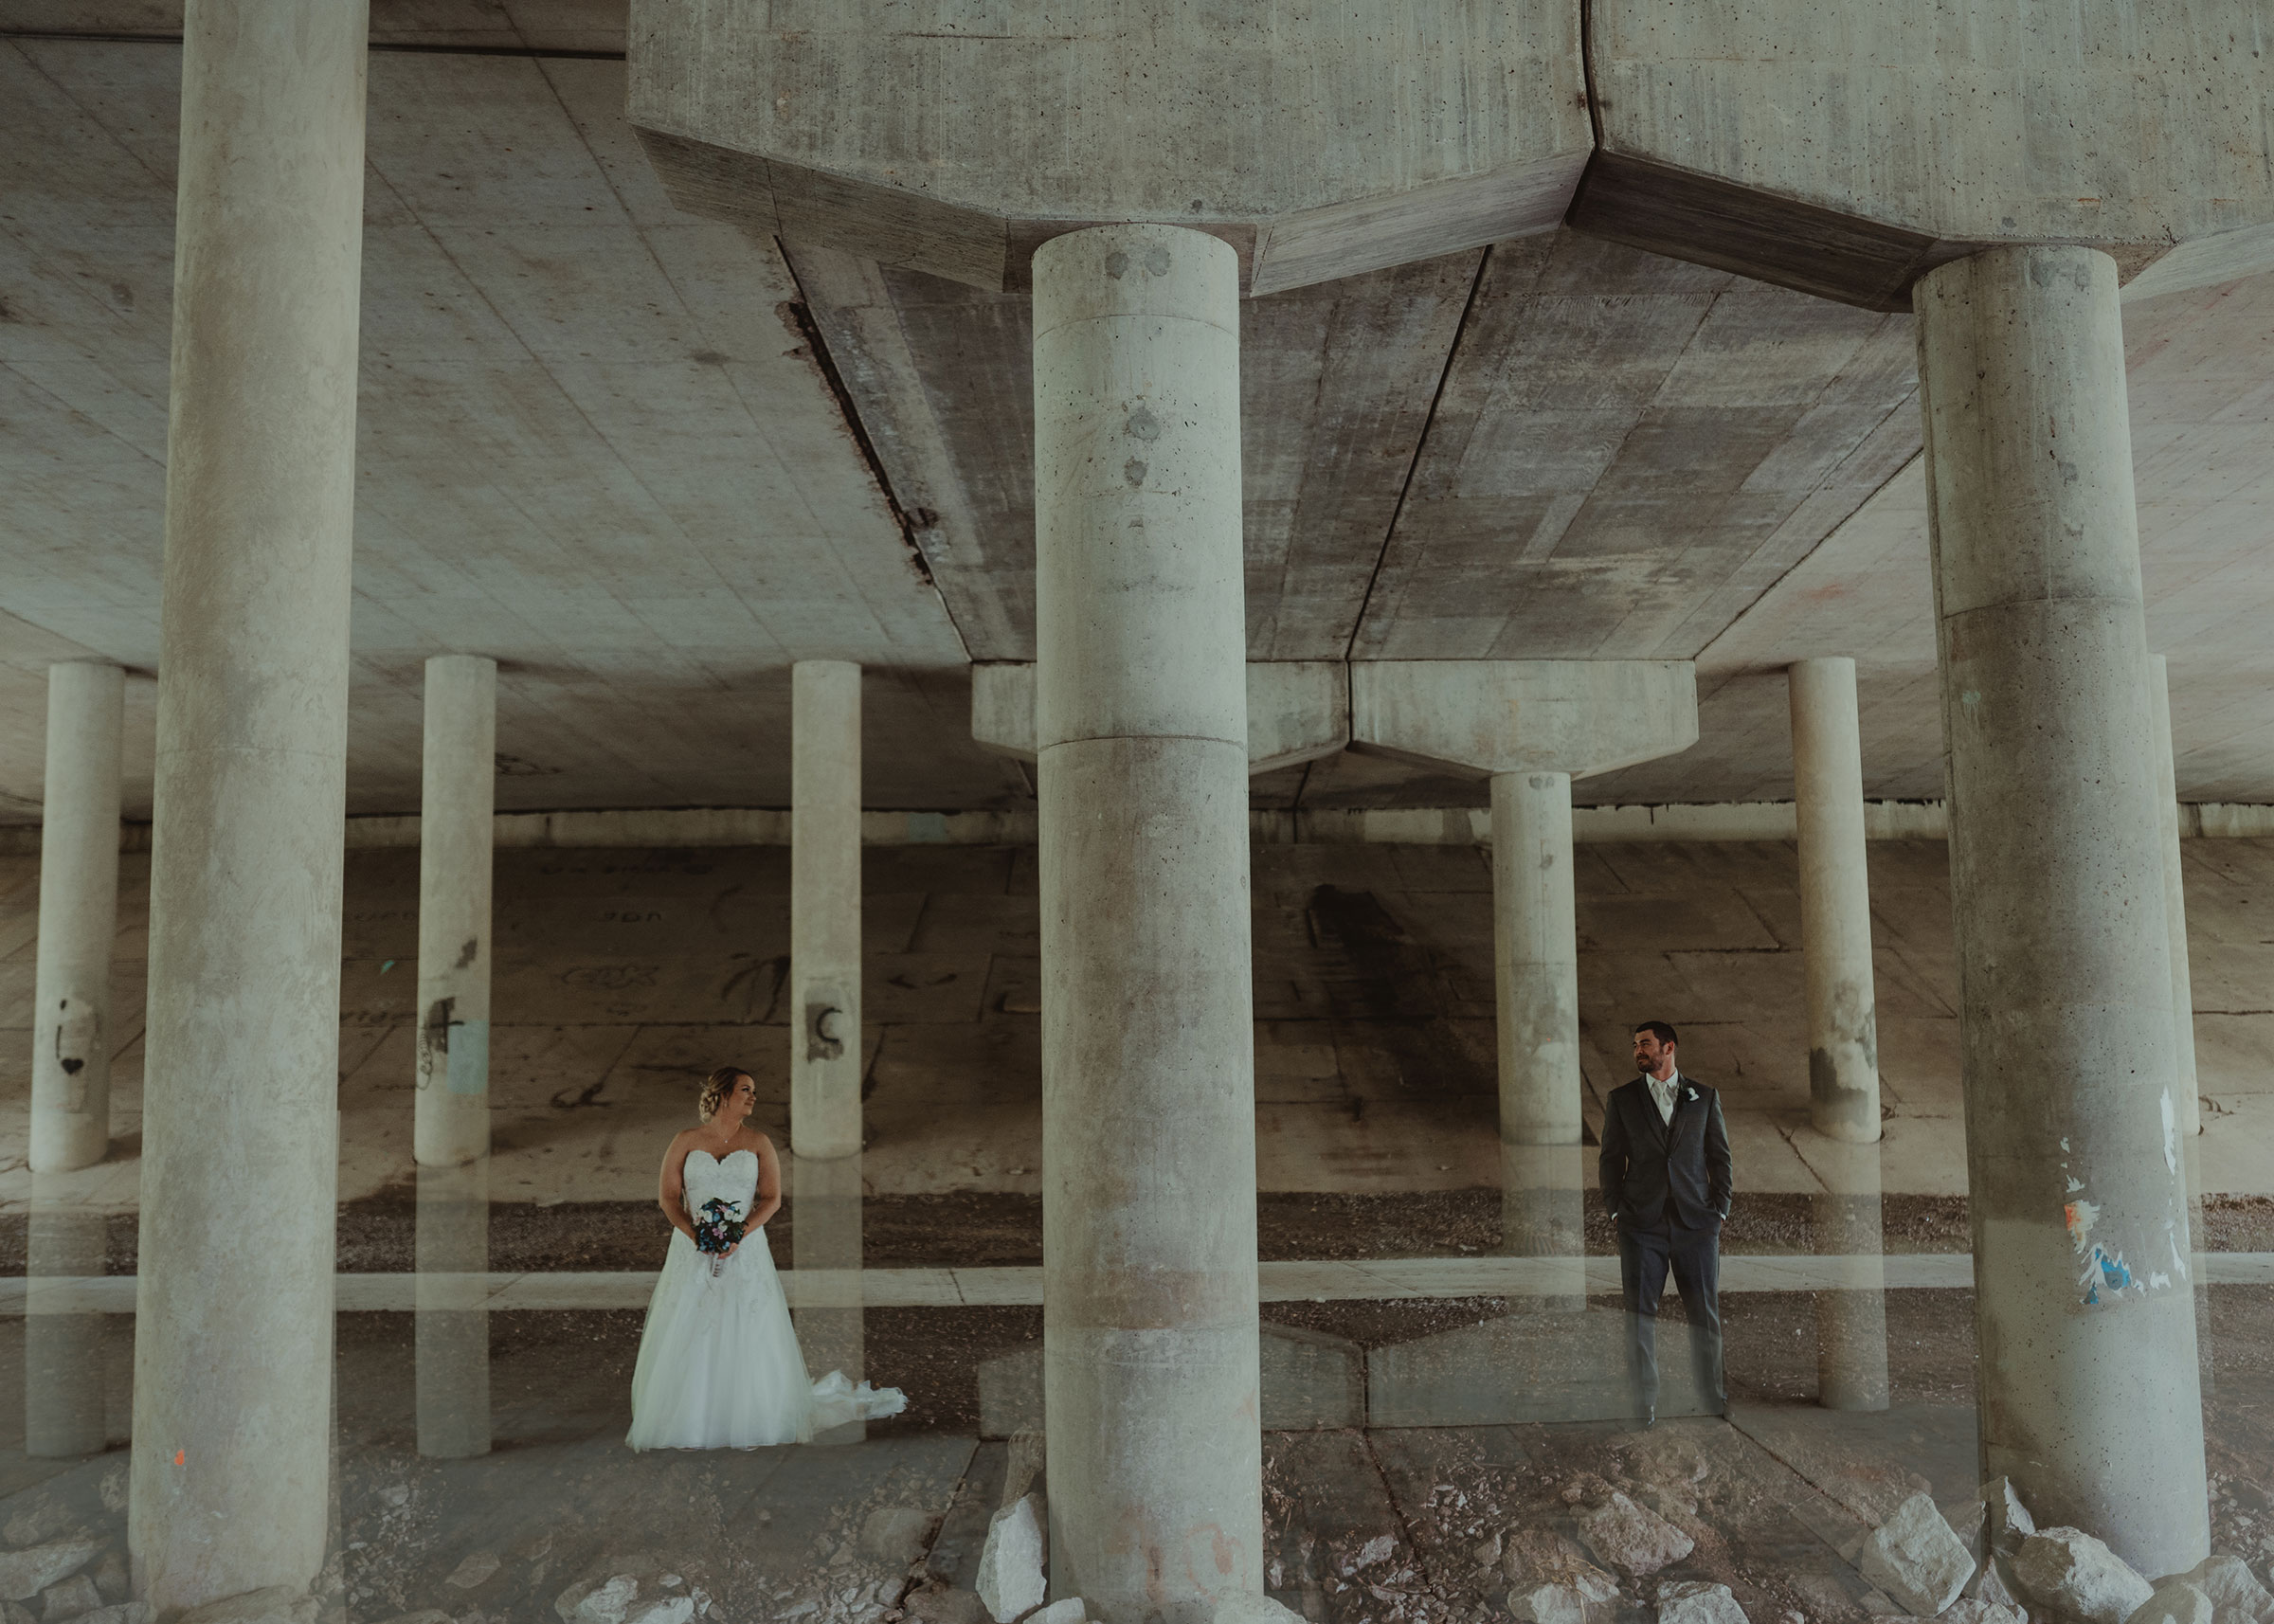 bride-groom-standing-under-overpass-decades-event-center-building-desmoines-iowa-raelyn-ramey-photography..jpg